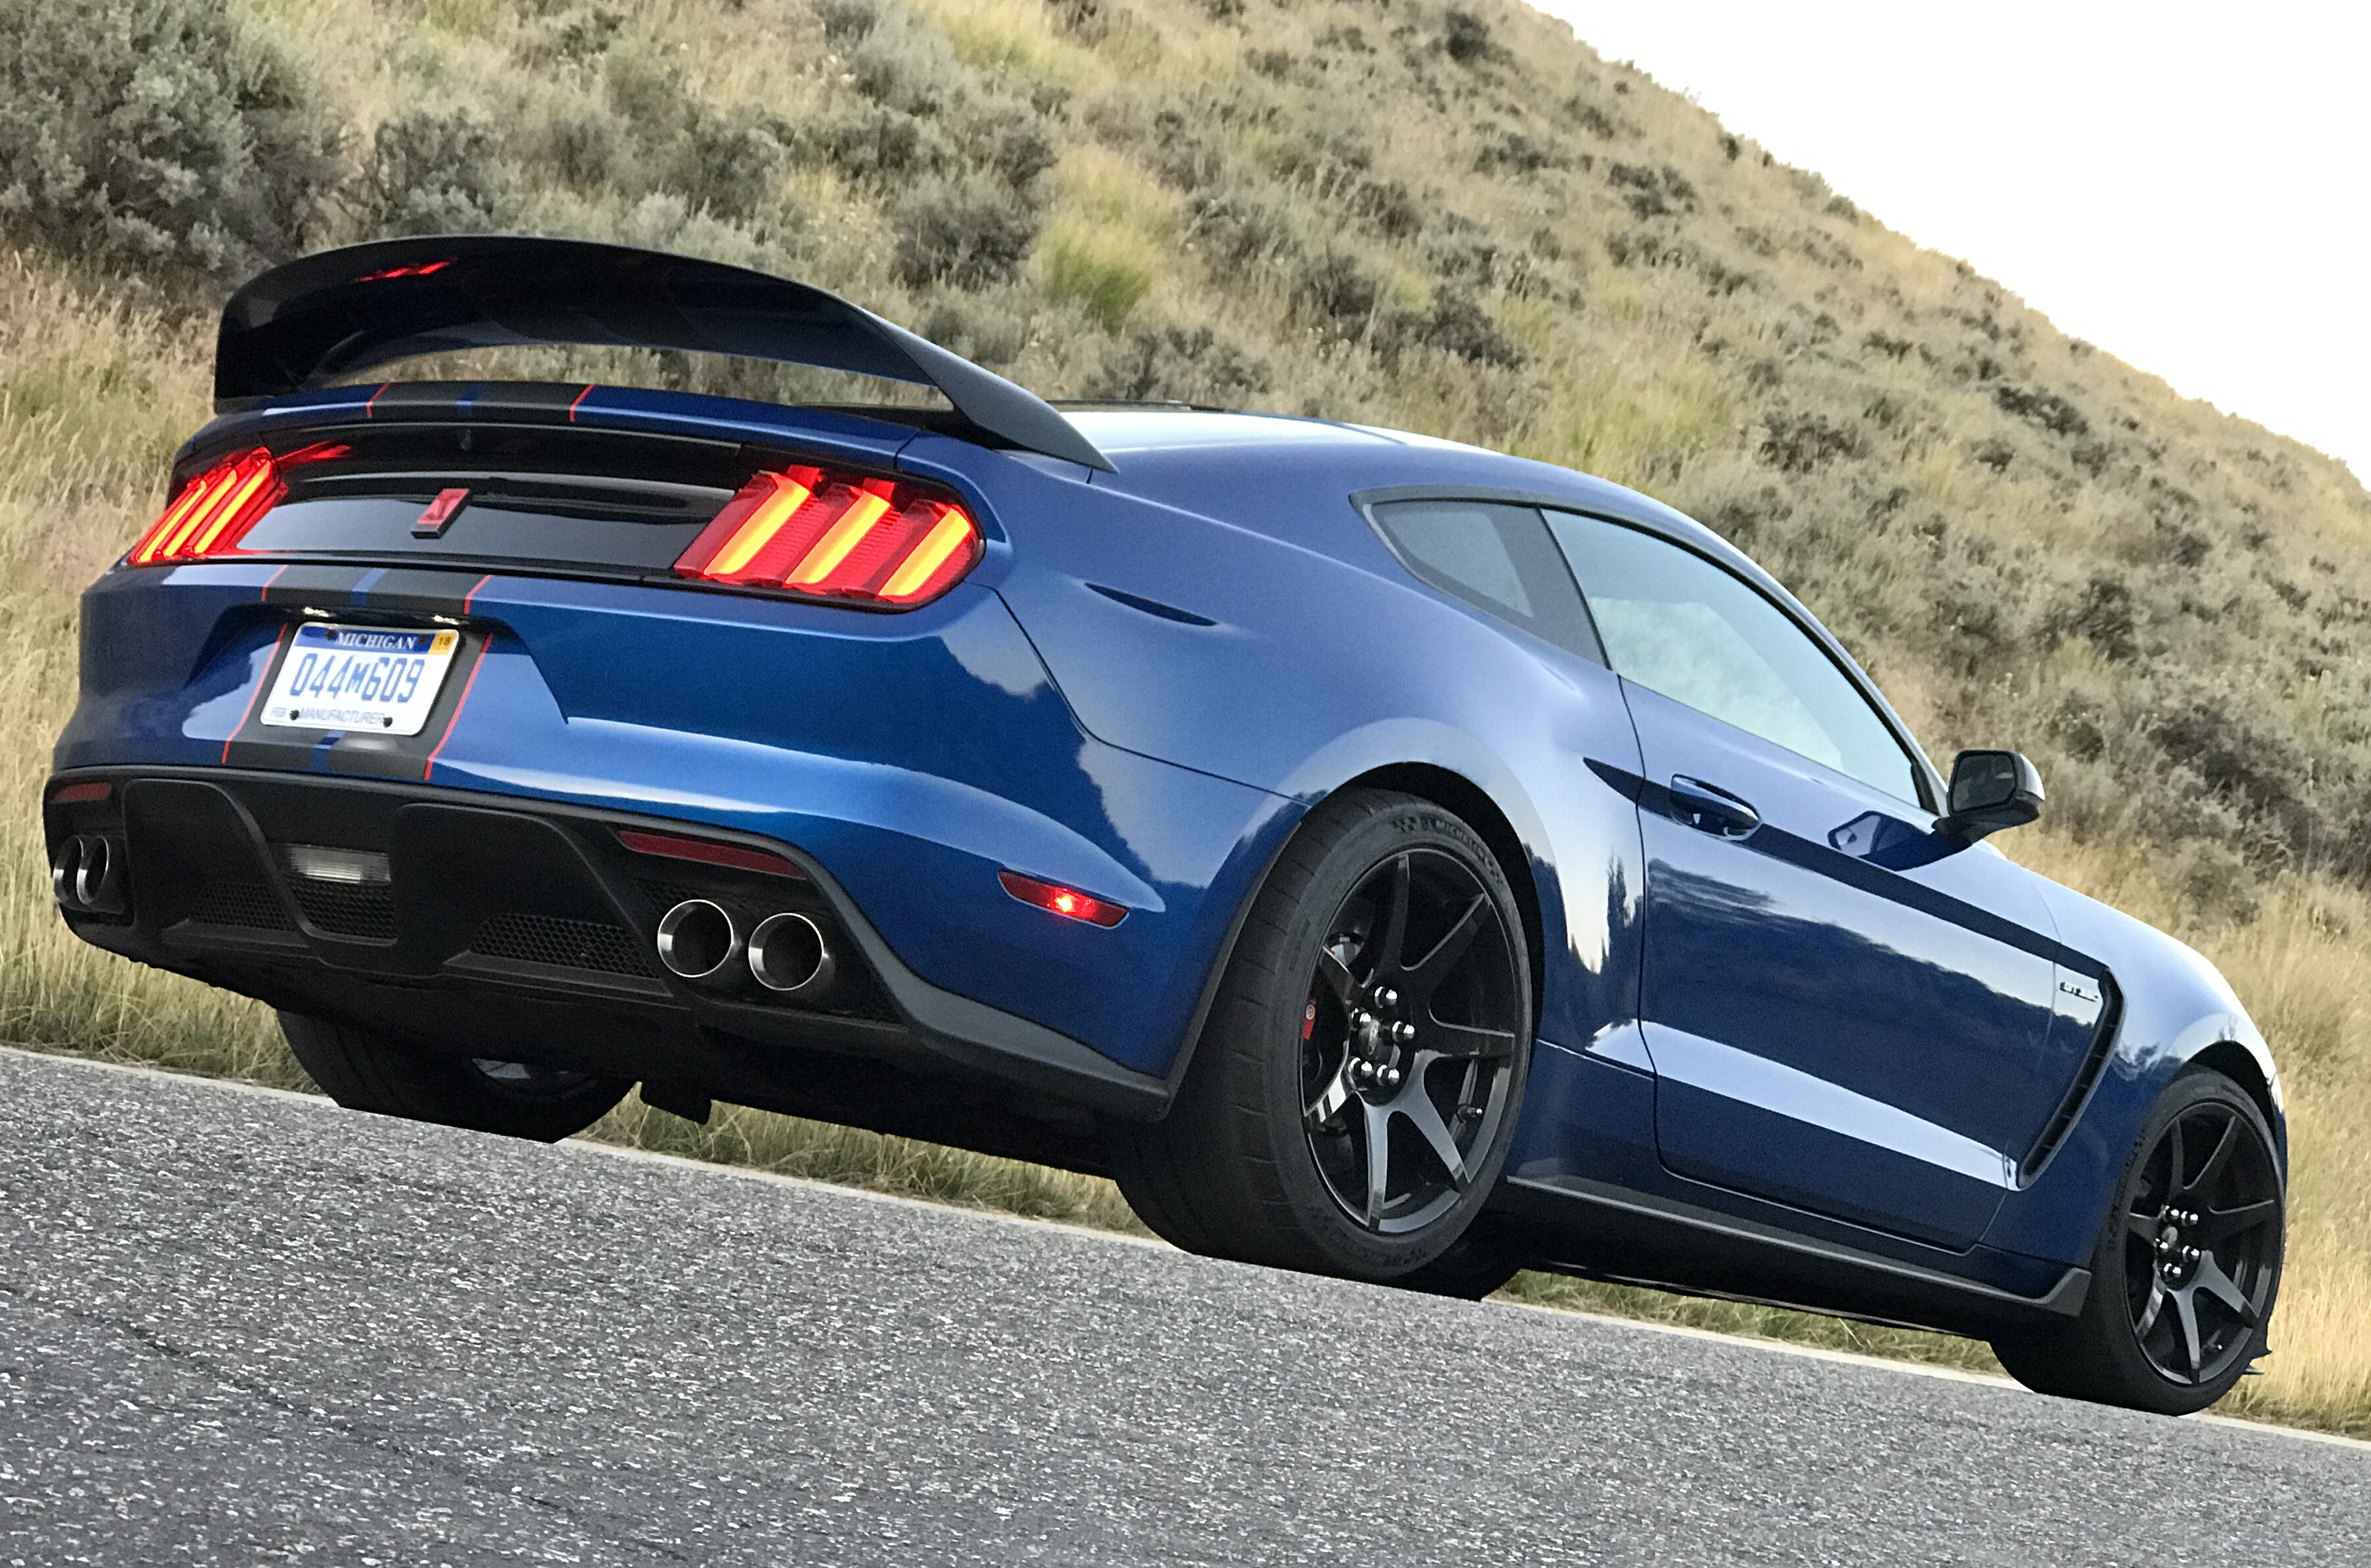 2017 Ford Mustang Shelby GT350R Rear